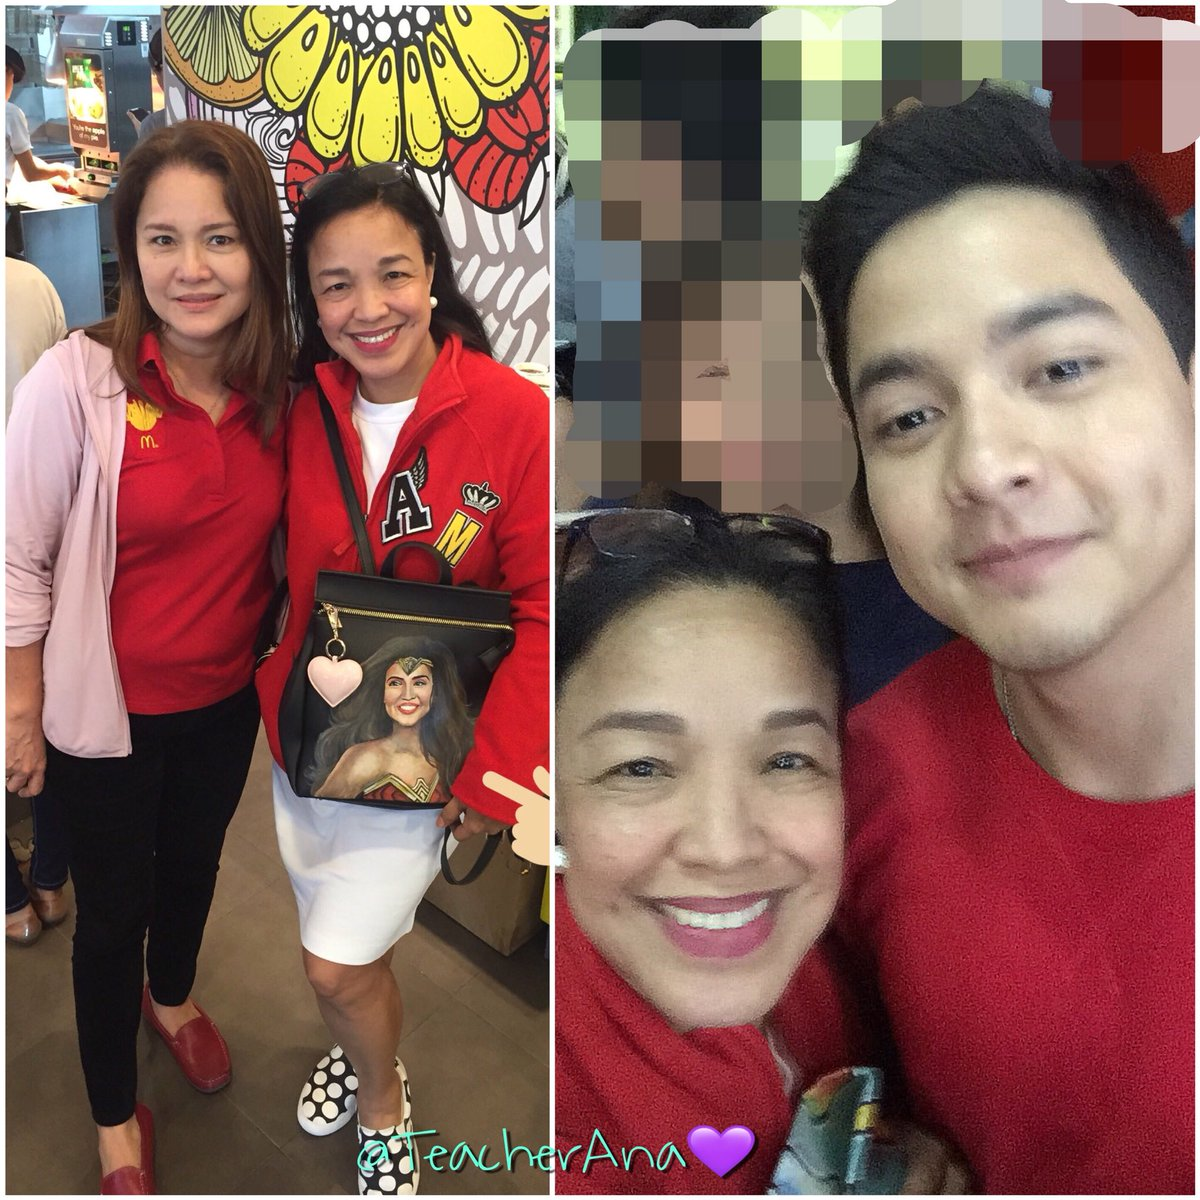 #MaineMcDoStaClaraTurns1  #VMonHOOQHistoryCon Congratulations,  @aldenrichards02 @mainedcm!  Mendoza in the morning: FaulkerSON at night!   We&#39;ve been blessed today despite the heavy showers and flood. God, please continue your downpour of love and blessings for both families <br>http://pic.twitter.com/STOIMqSy9s